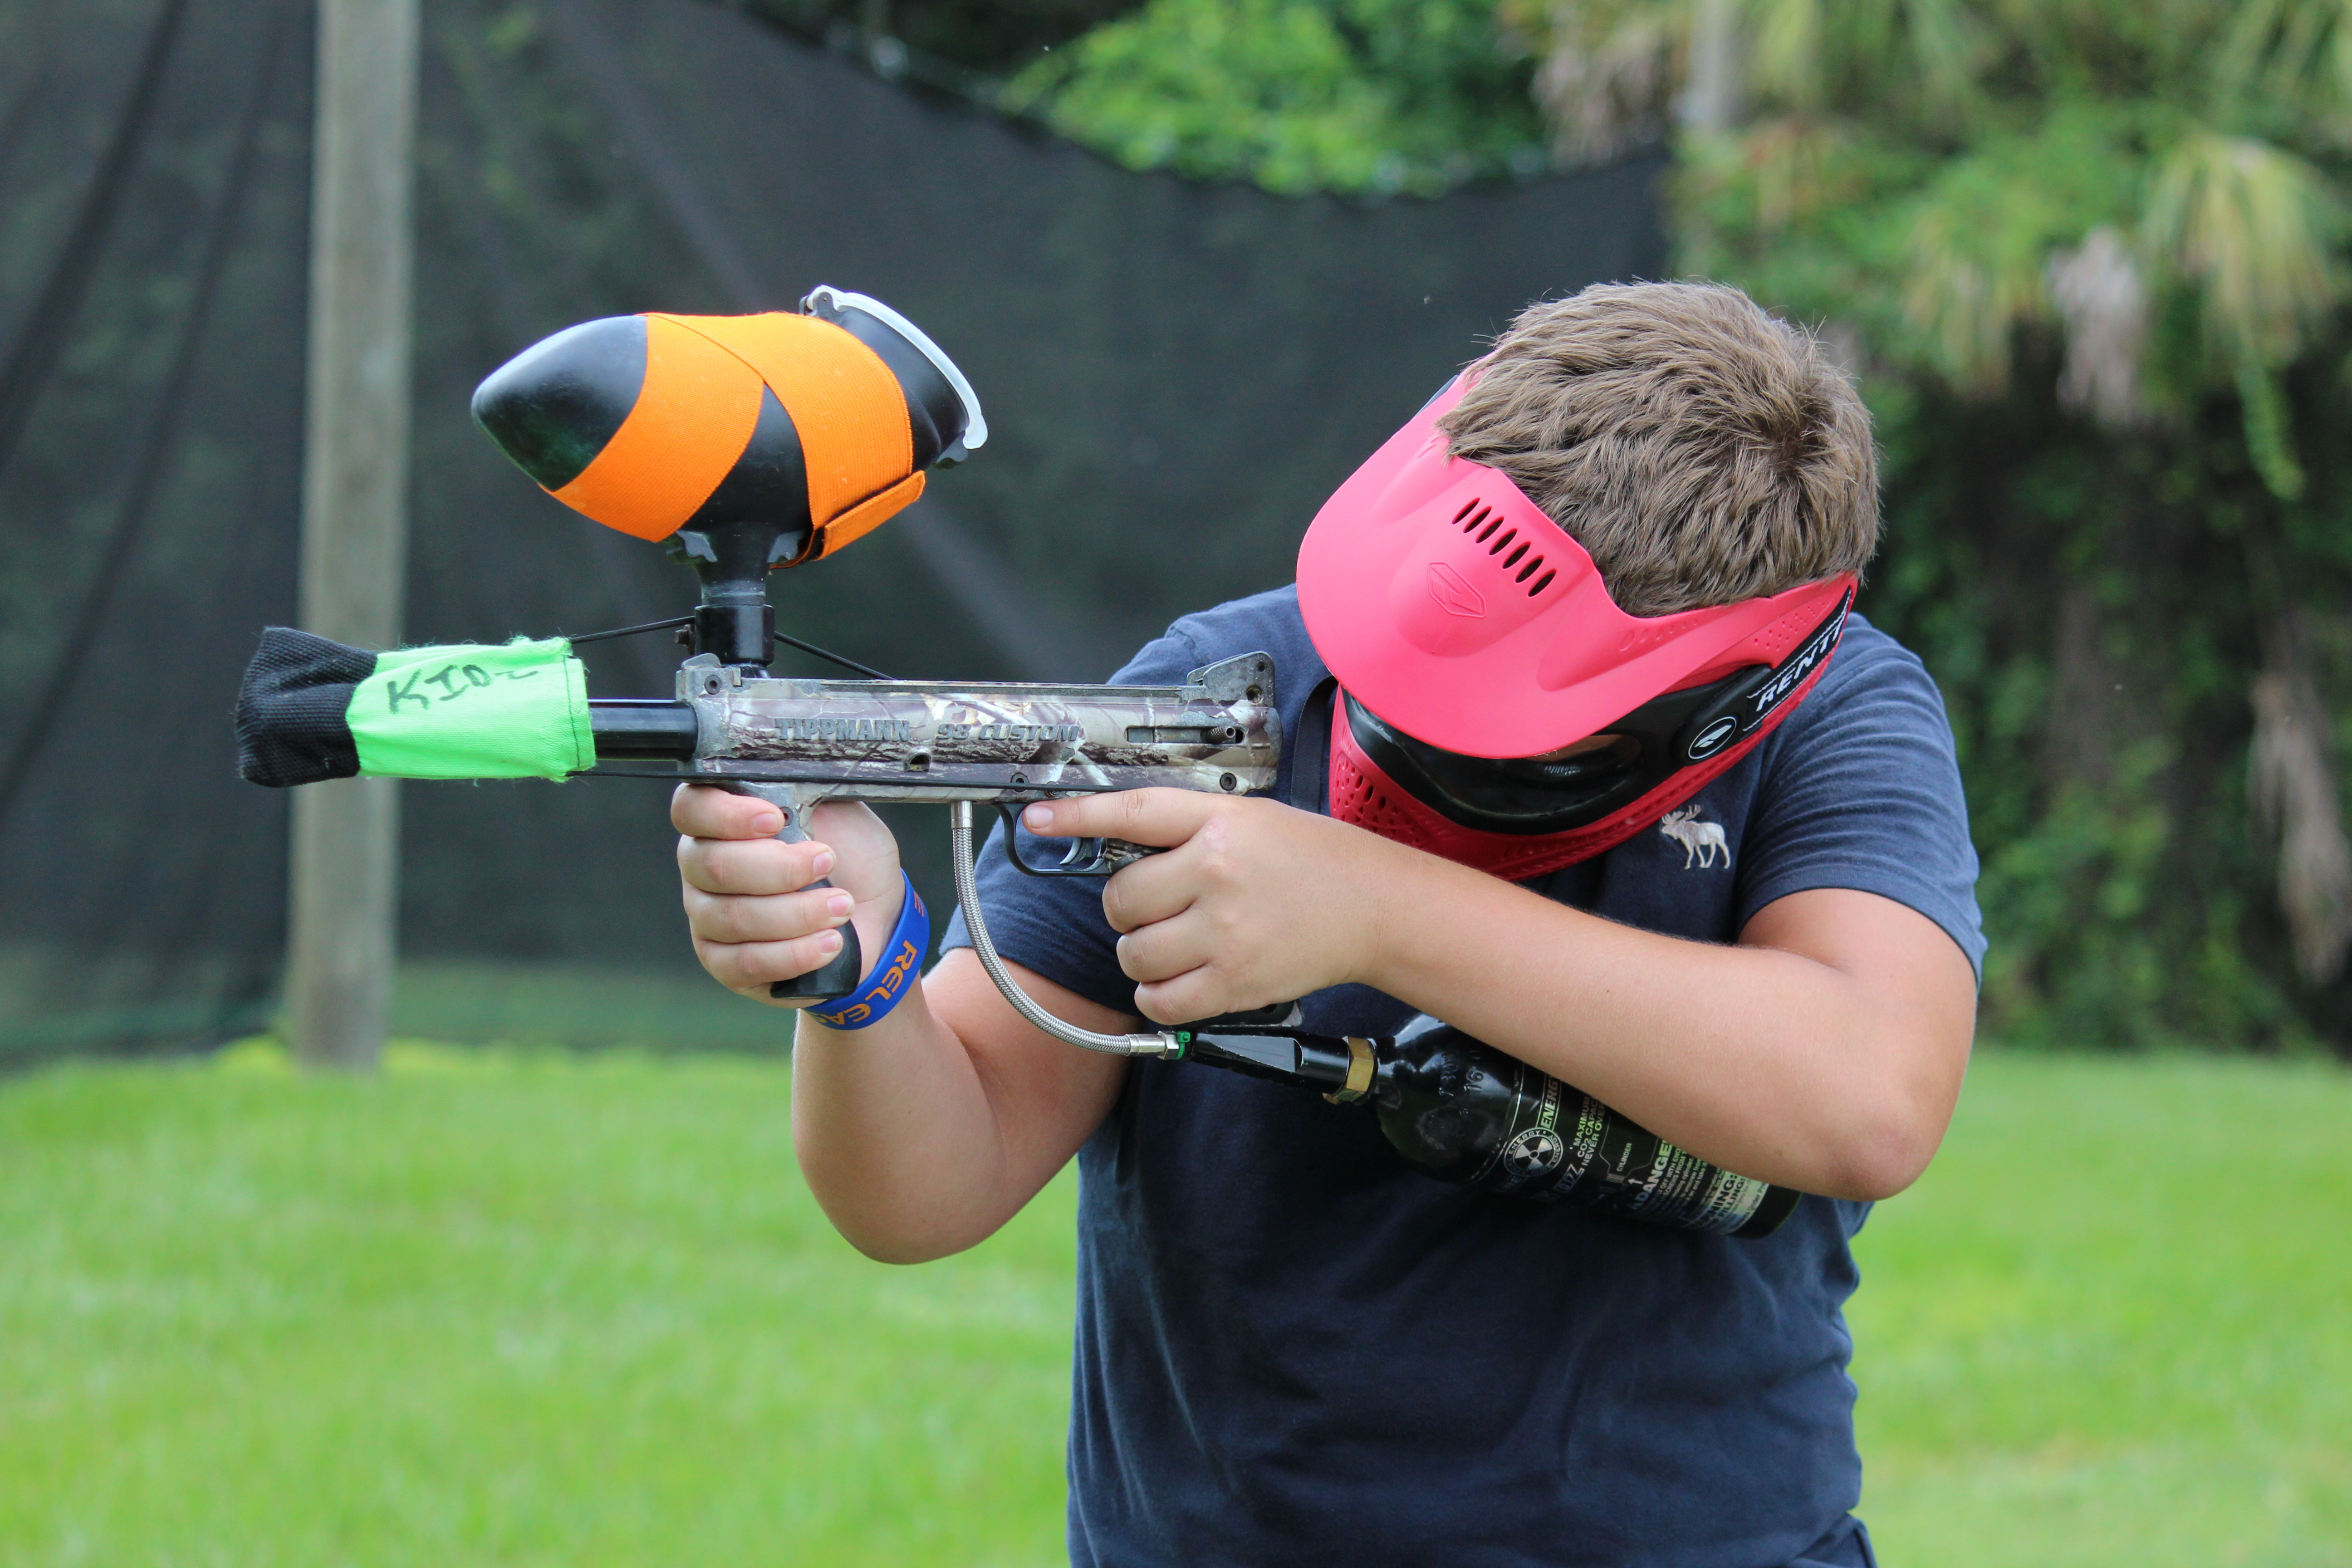 Camper takes aim with paintball gun